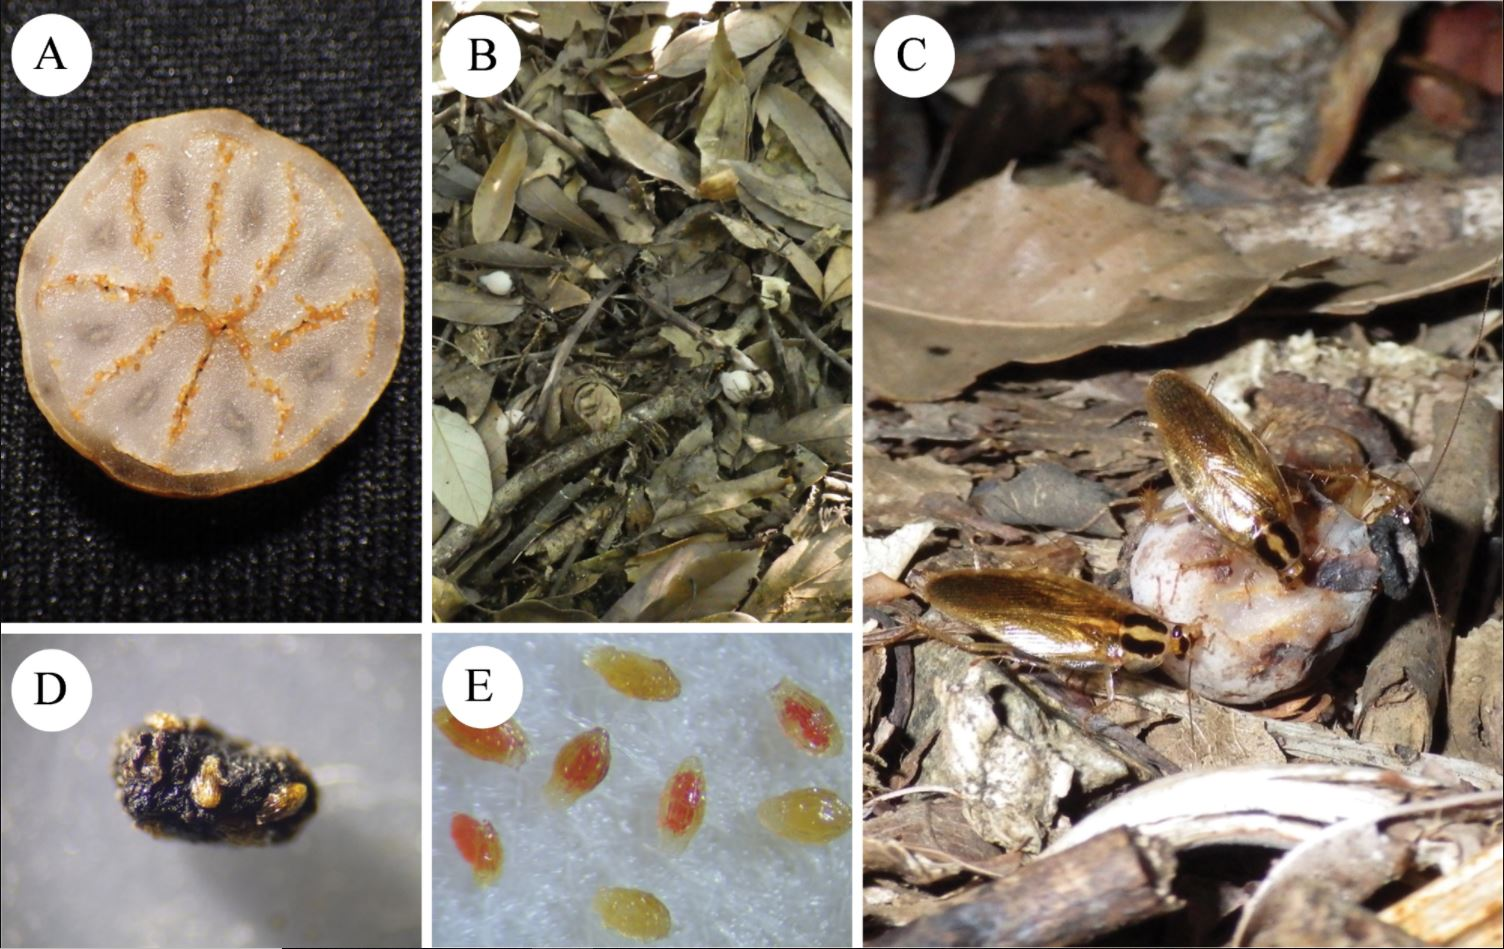 (A)  M. humile  fruit showing many minute seeds embedded in the less juicy pulp. (B) Fallen fruits.(C) Blattella nipponica feeding on the fruit. (D) Cockroach poop with seeds. (E) Stained cockroach-ingested seeds